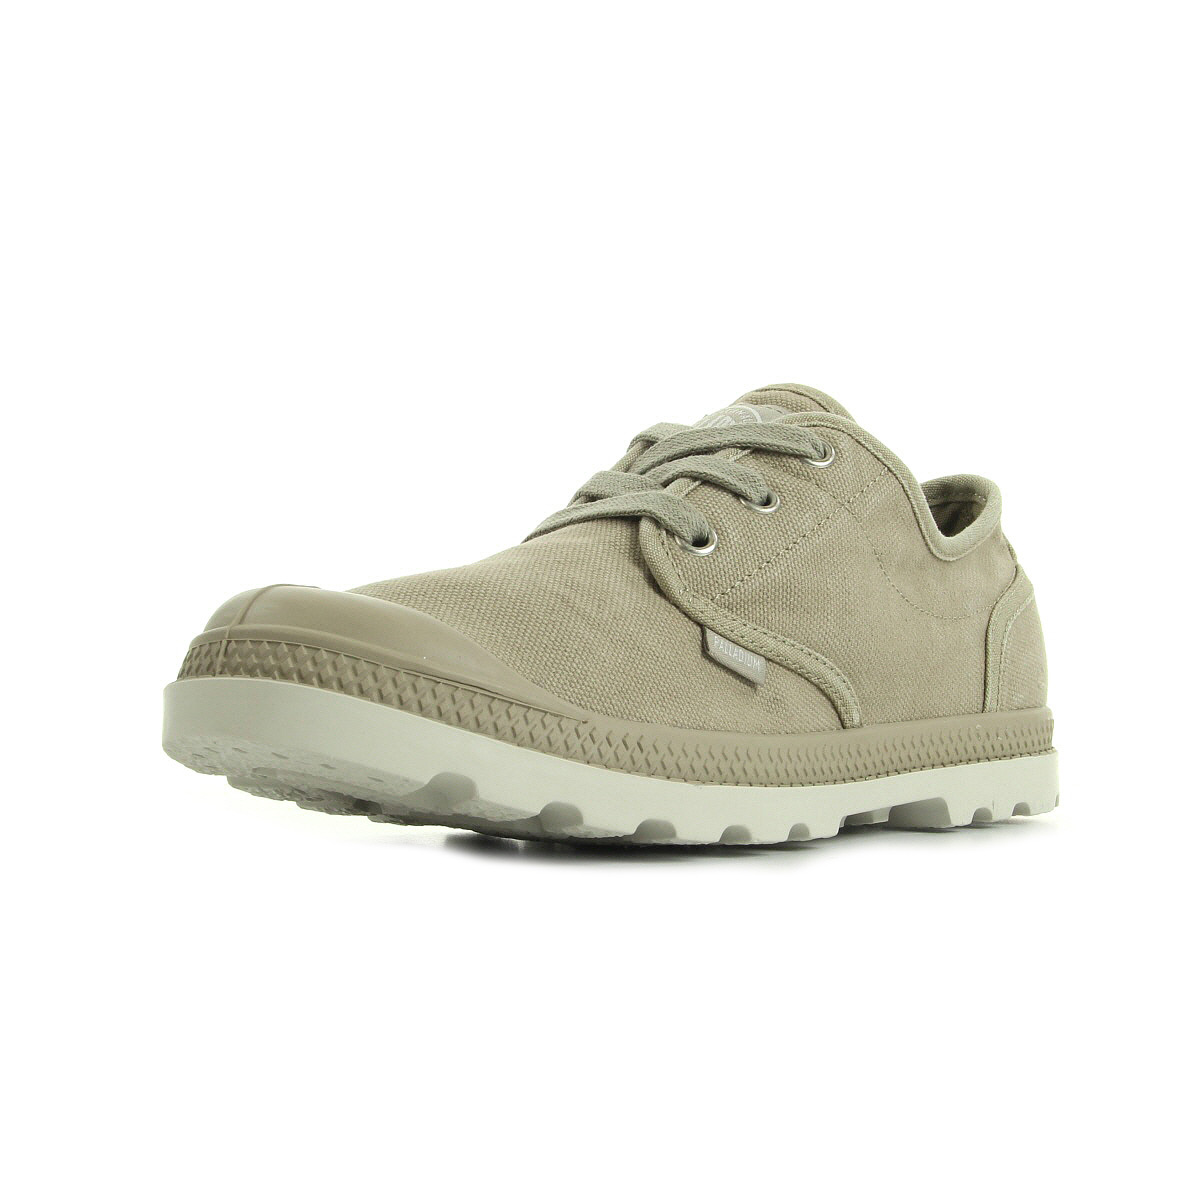 Sneakers beige/gris US Oxford - Palladium